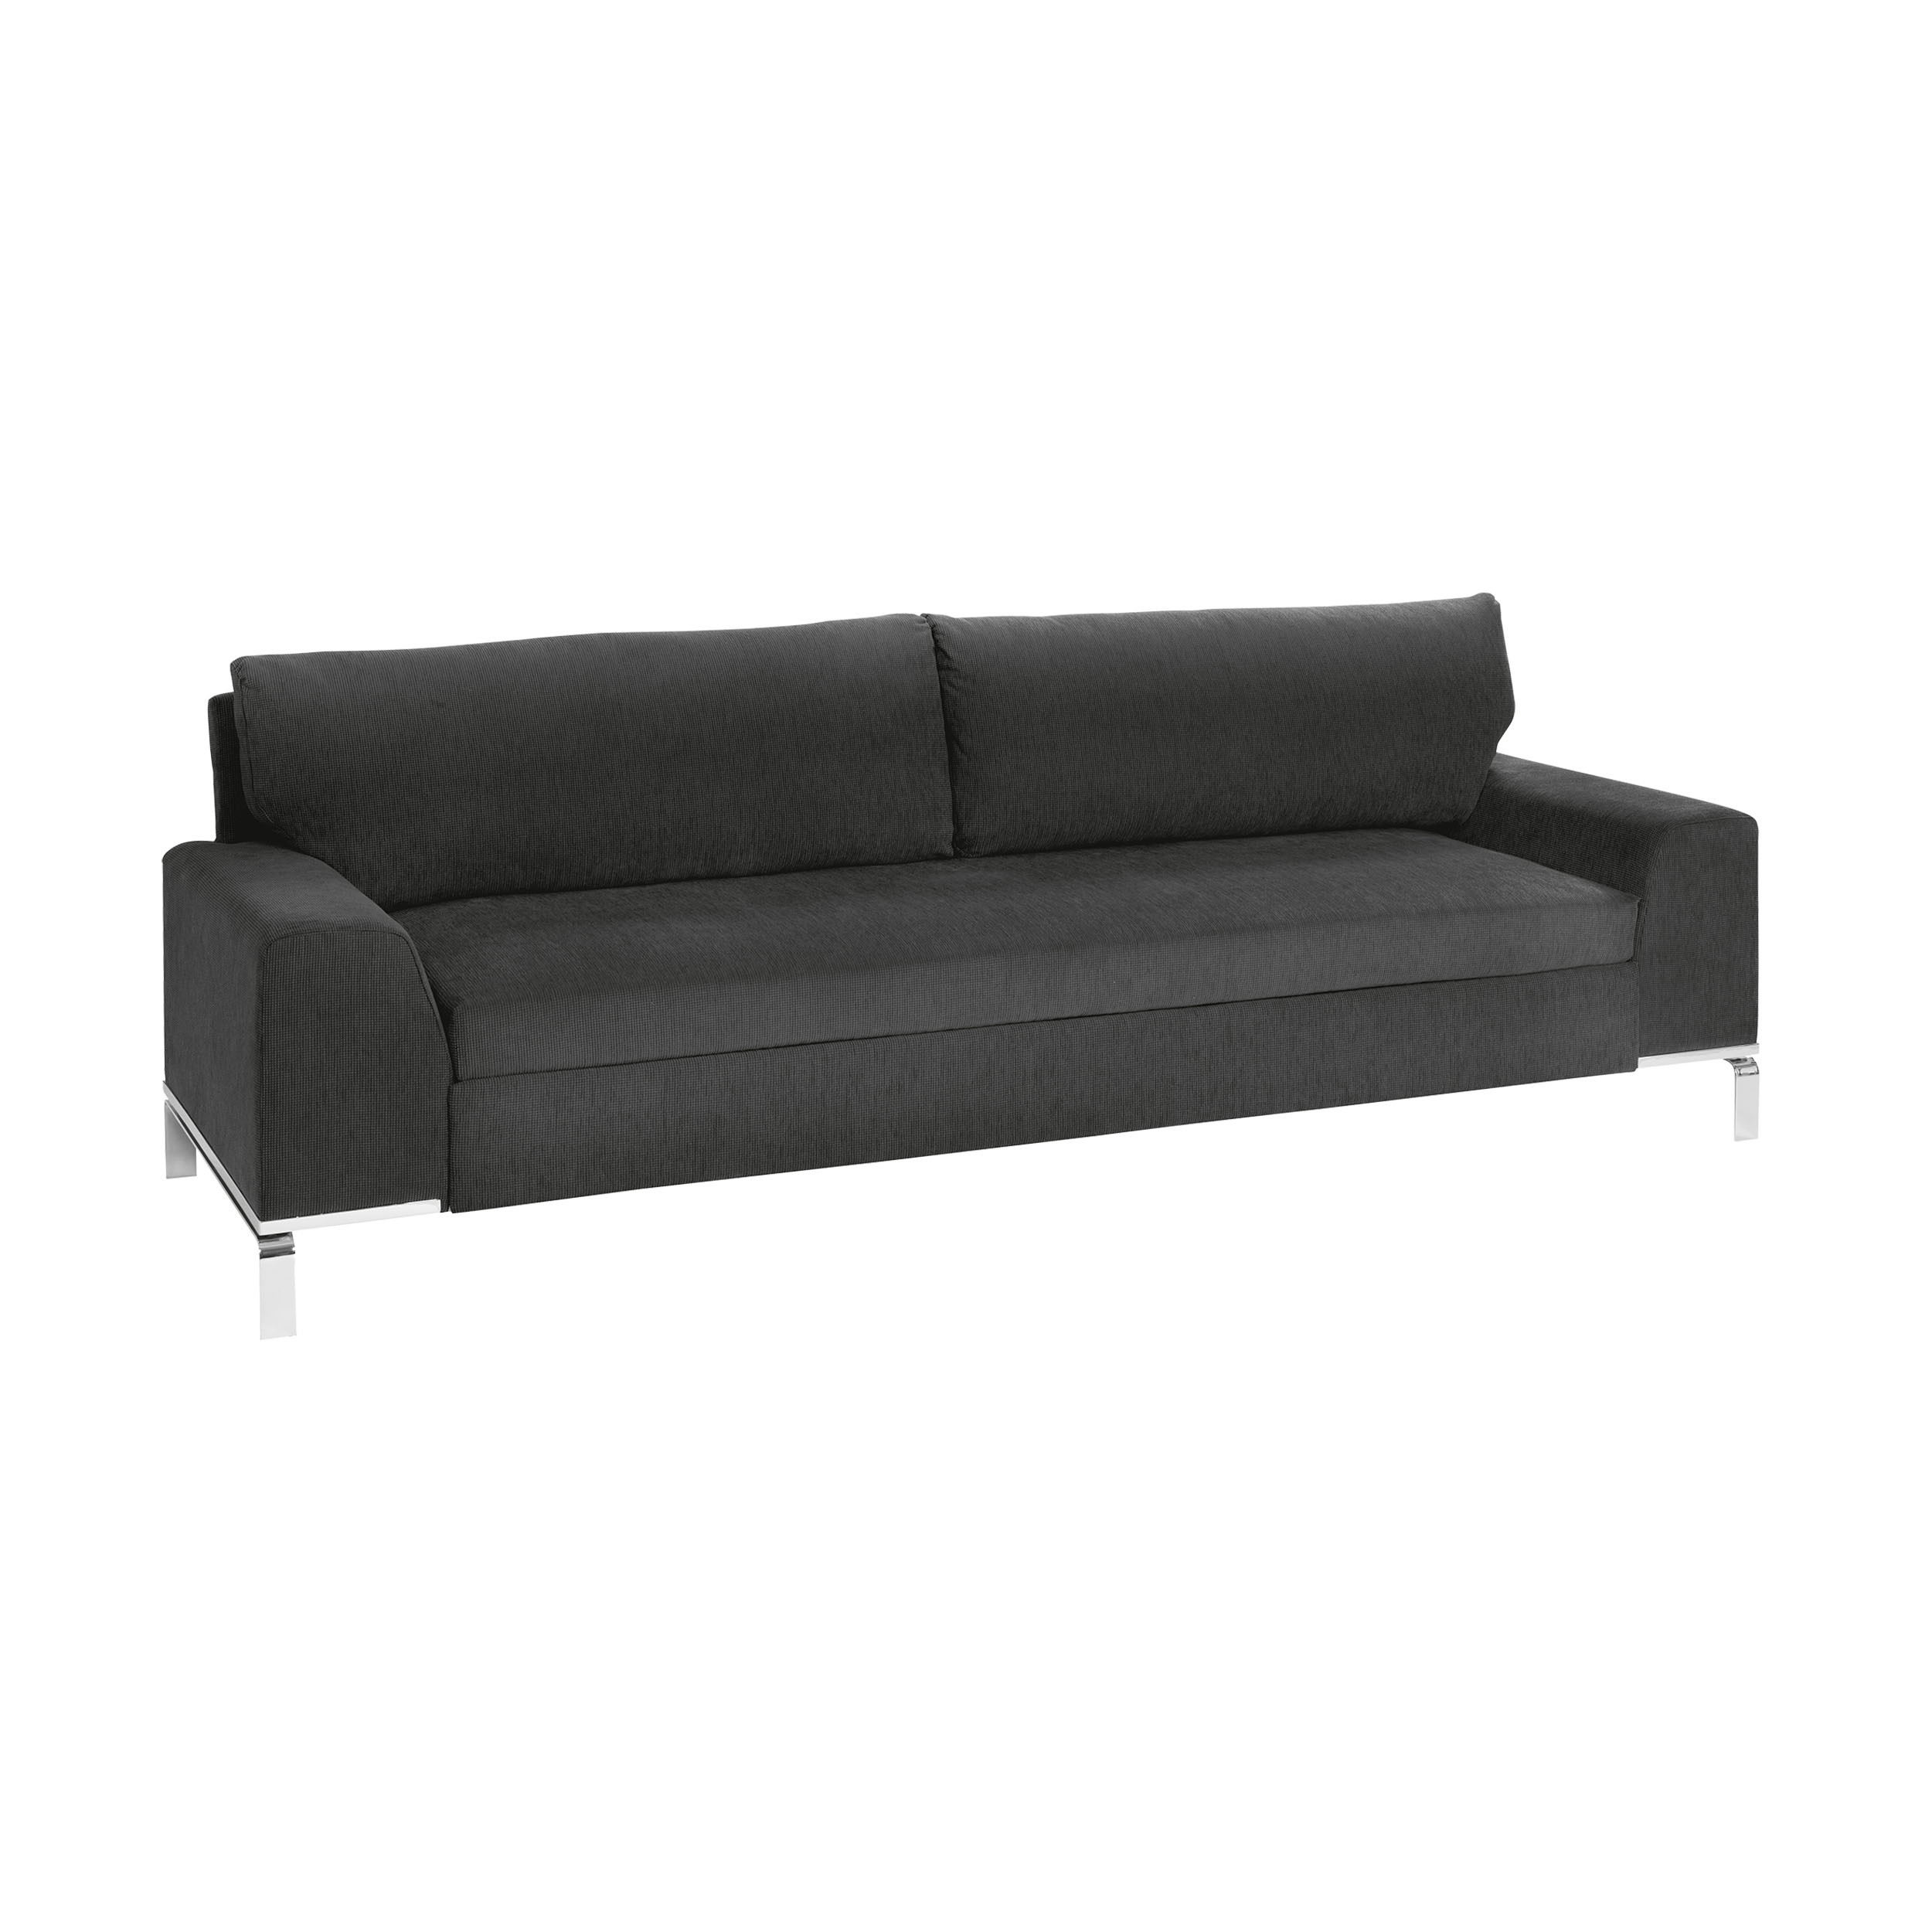 bed for living divan 3 sitzer schlafsofa anthrazit. Black Bedroom Furniture Sets. Home Design Ideas